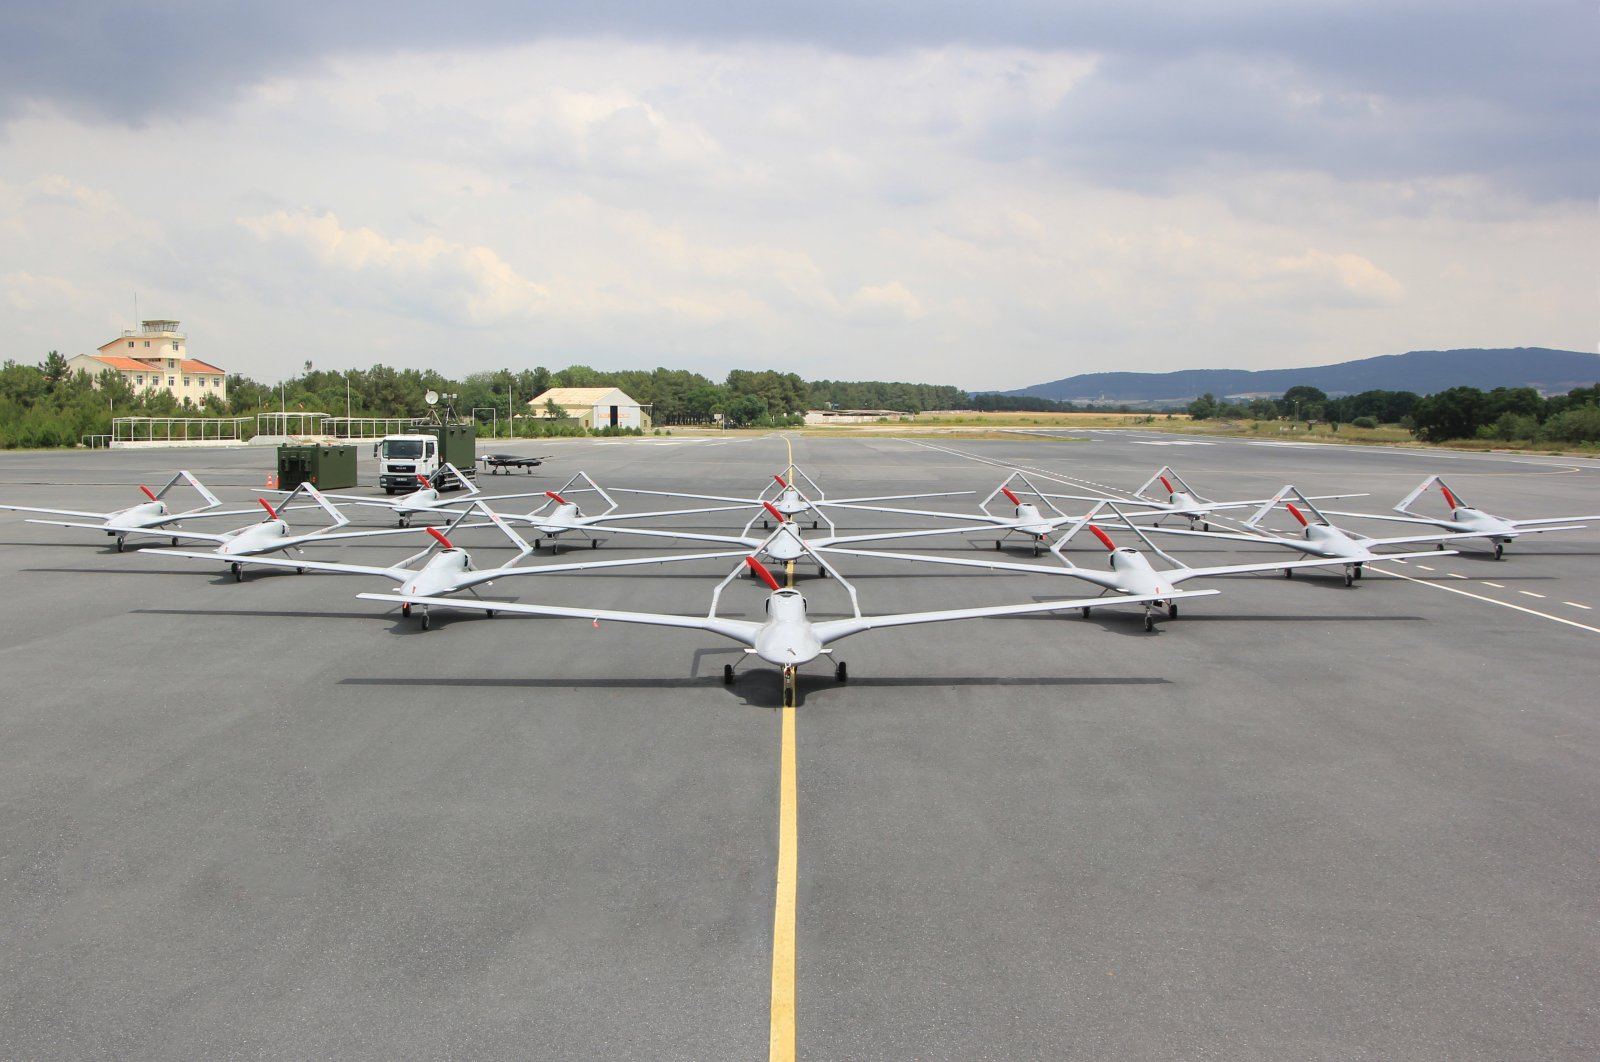 Bayraktar TB2 unmanned aerial vehicles (UAVs) are seen parked at an airfield in Istanbul, June 11, 2020. (AA Photo)